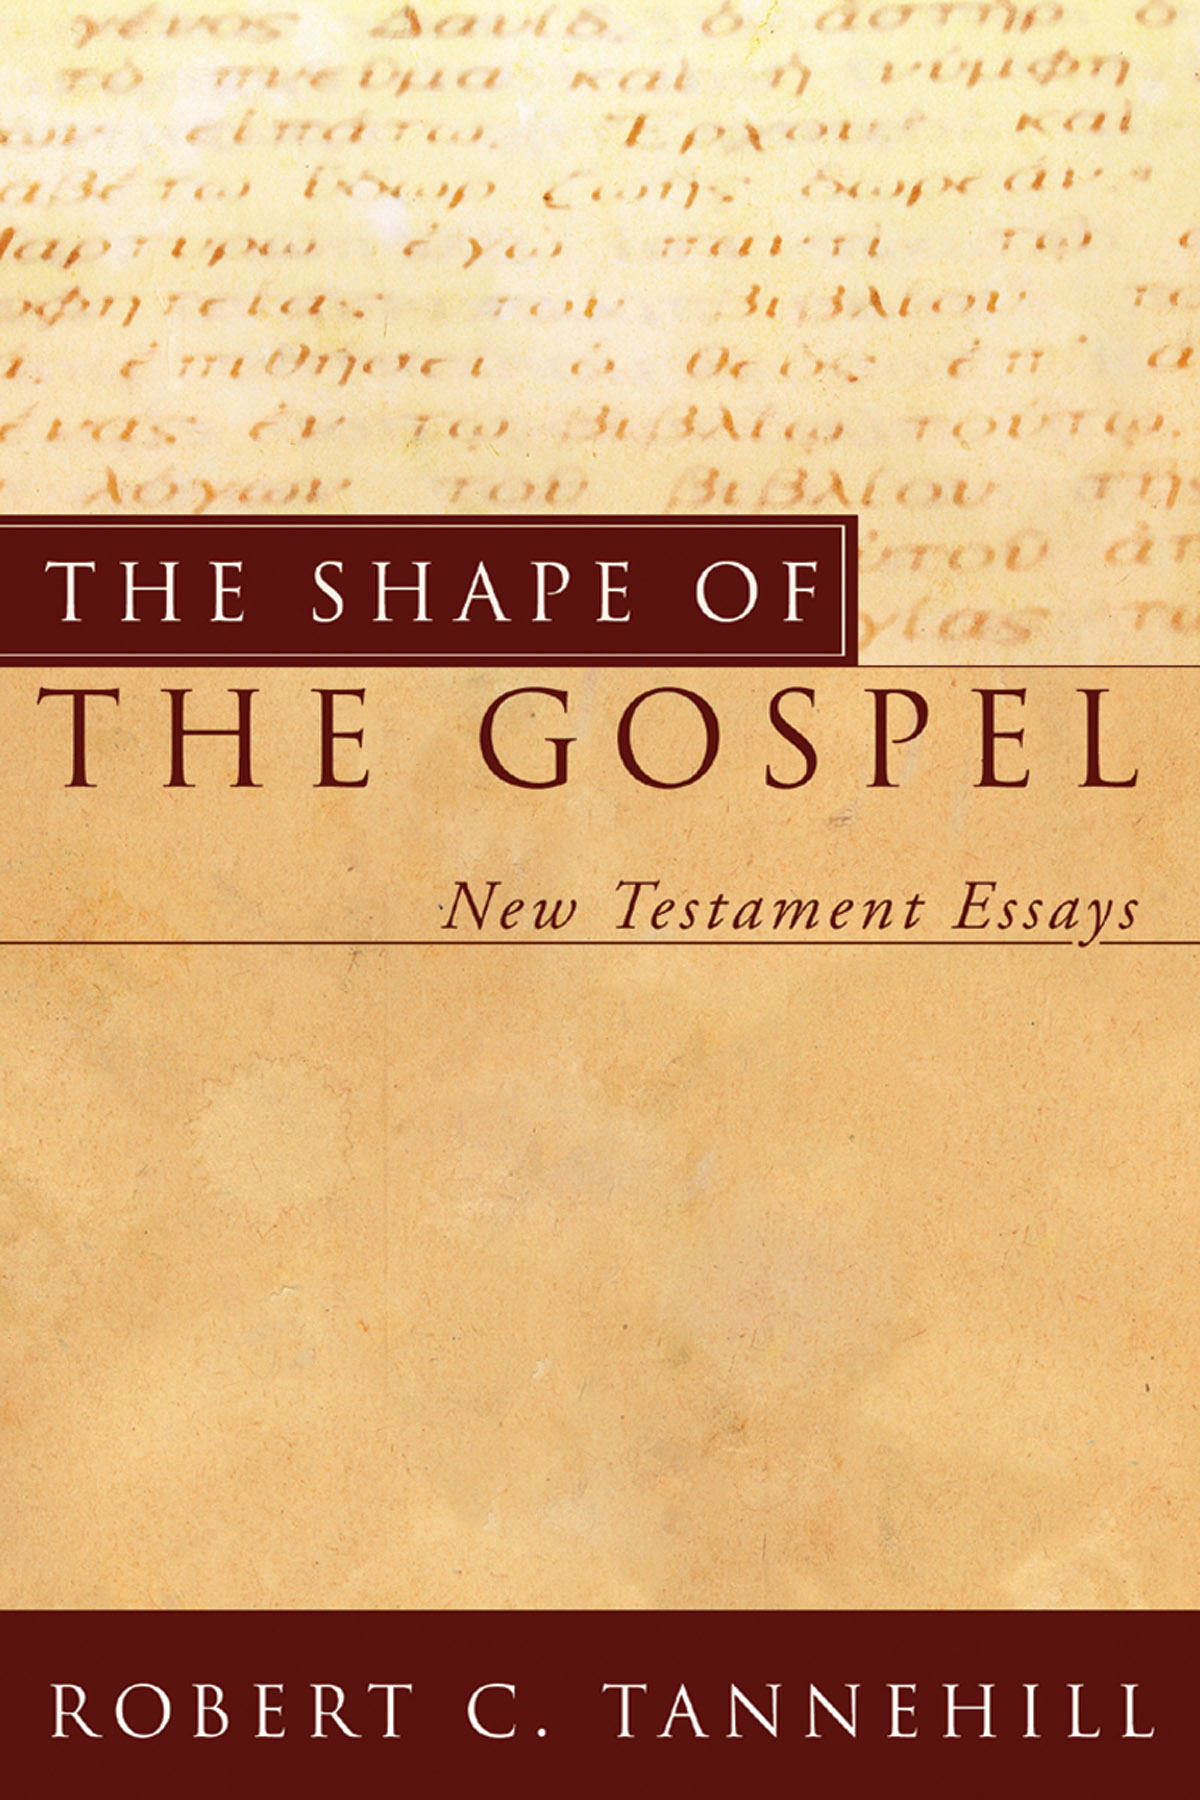 essay on the gospel of luke The goal of this paper is to point out where luke's theology differs from the other gospel writers, as seen in his unique point of view and account of jesus.